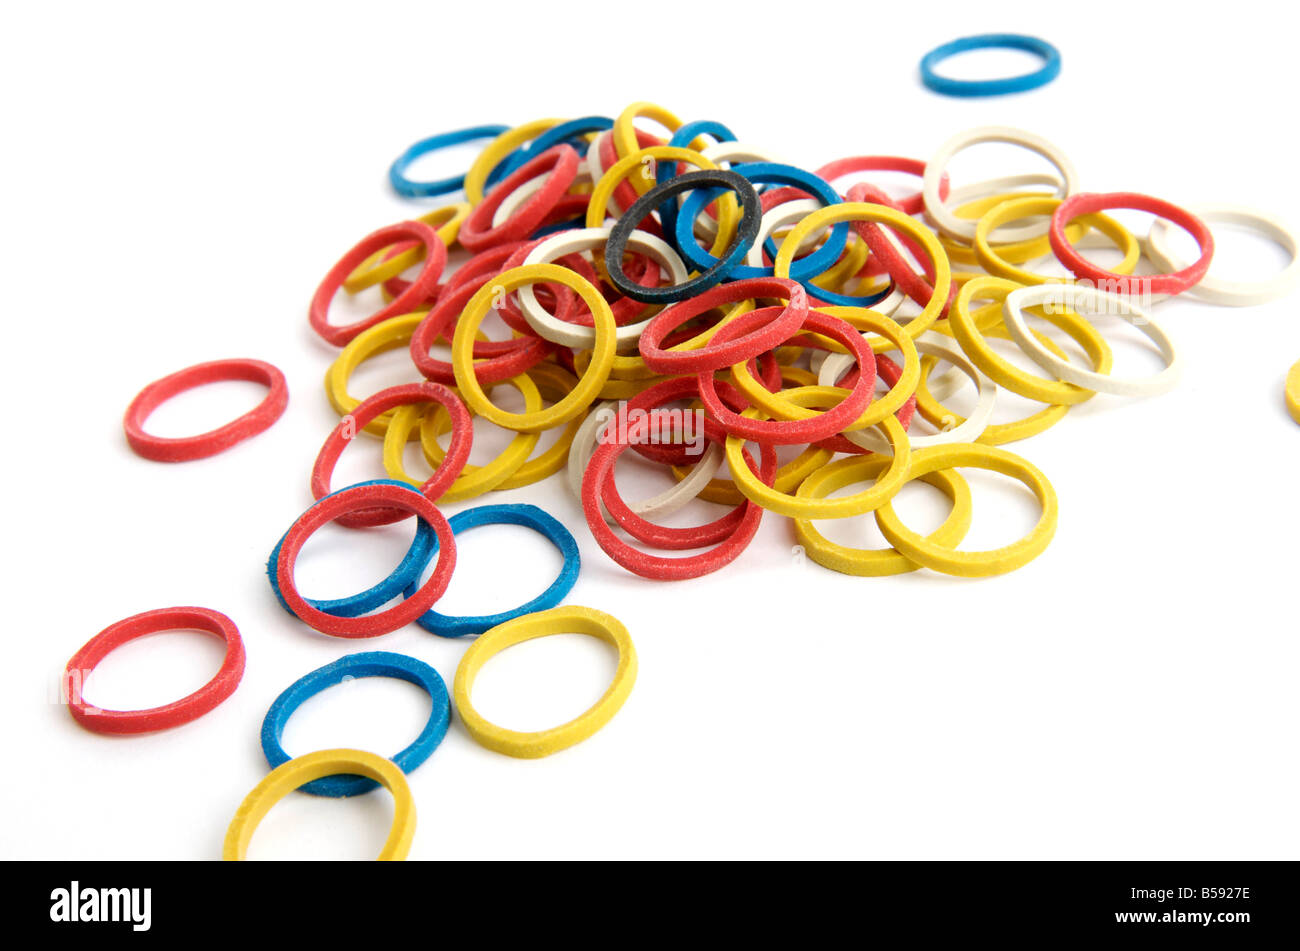 Heap of small multicolored rubber / elastic bands - Stock Image